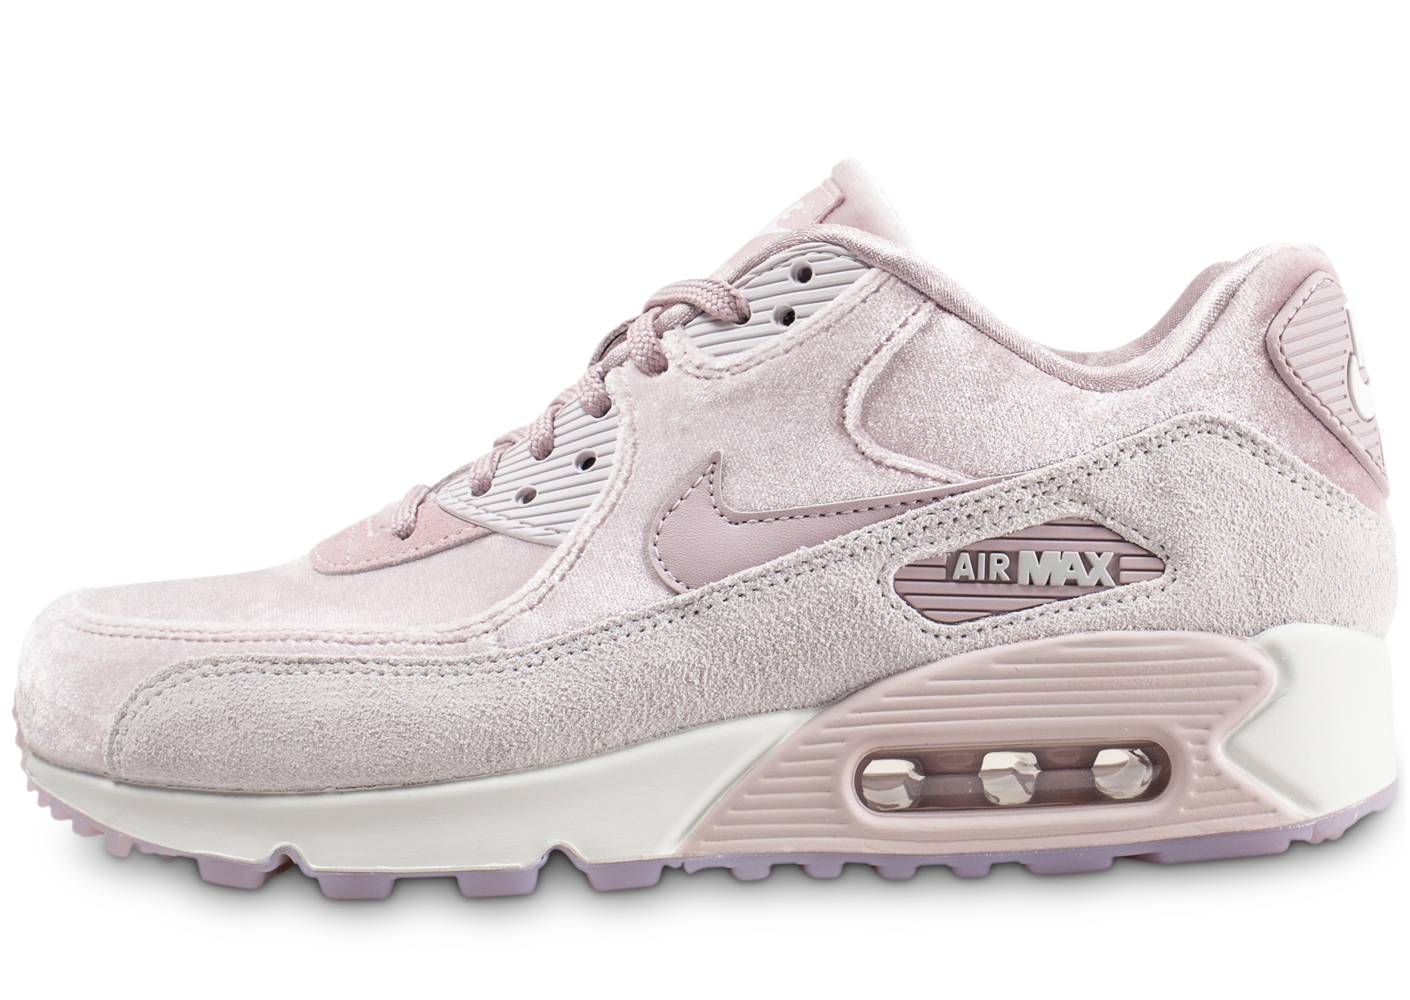 Nike Femme Air Max 90 Velours Rose Baskets